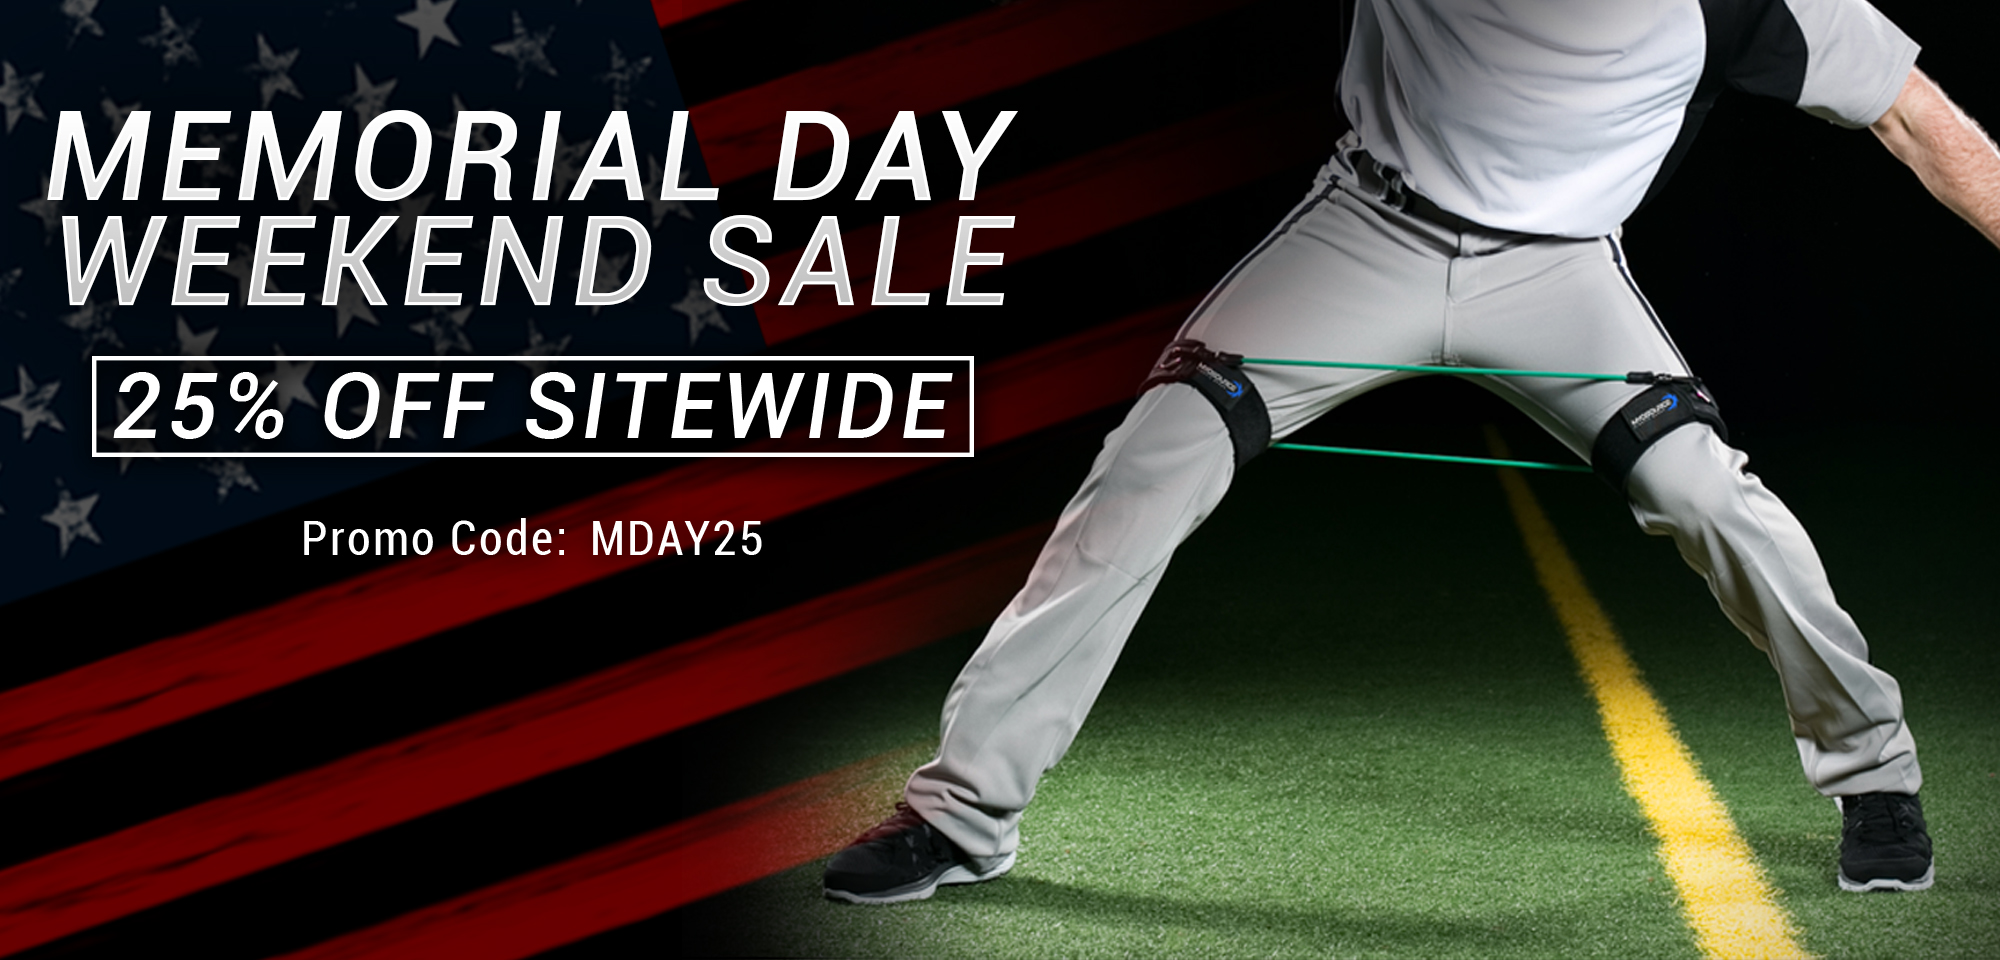 Memorial Day Weekend Sale - 25% off Sitewide - Promo Code: MDAY25